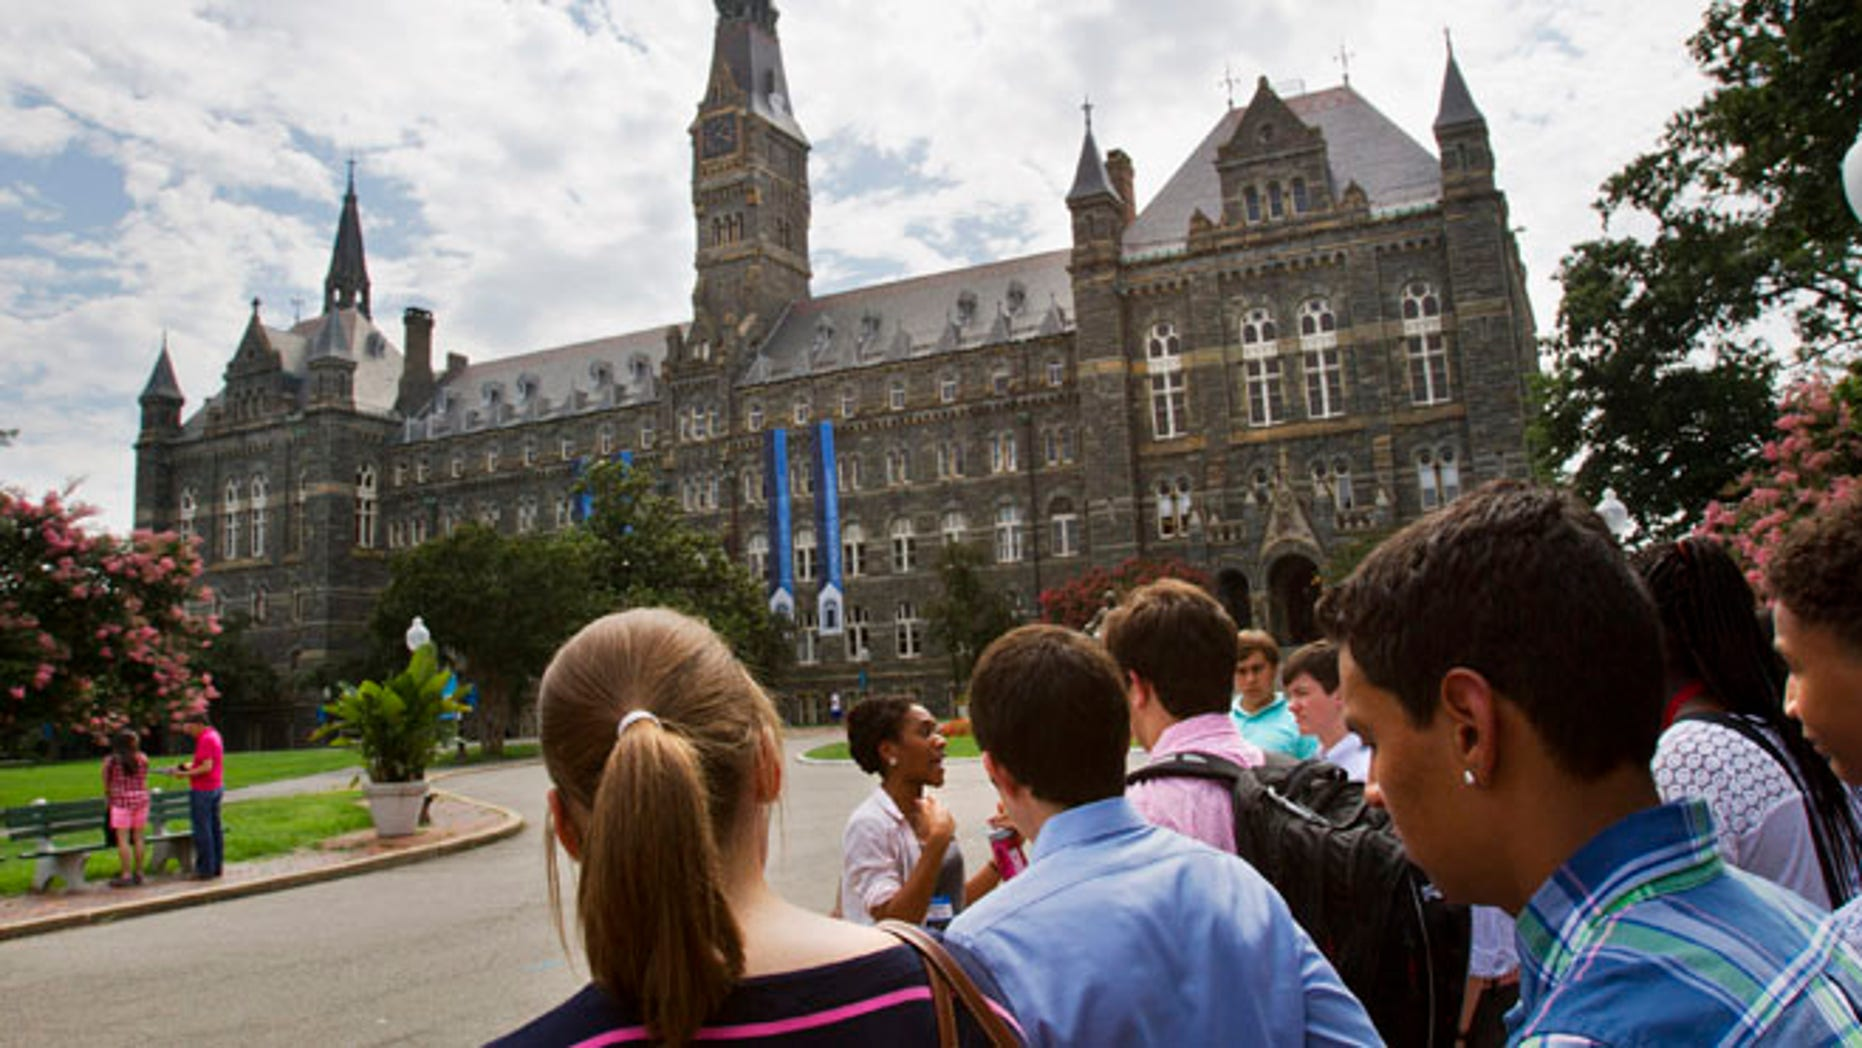 Prospective students tour Georgetown University's campus in Washington, in this Wednesday, July 10, 2013, file photo. Grants and scholarships are taking a leading role in paying college bills, surpassing the traditional role parents long have played in helping foot the bills, according to a report from loan giant Sallie Mae.